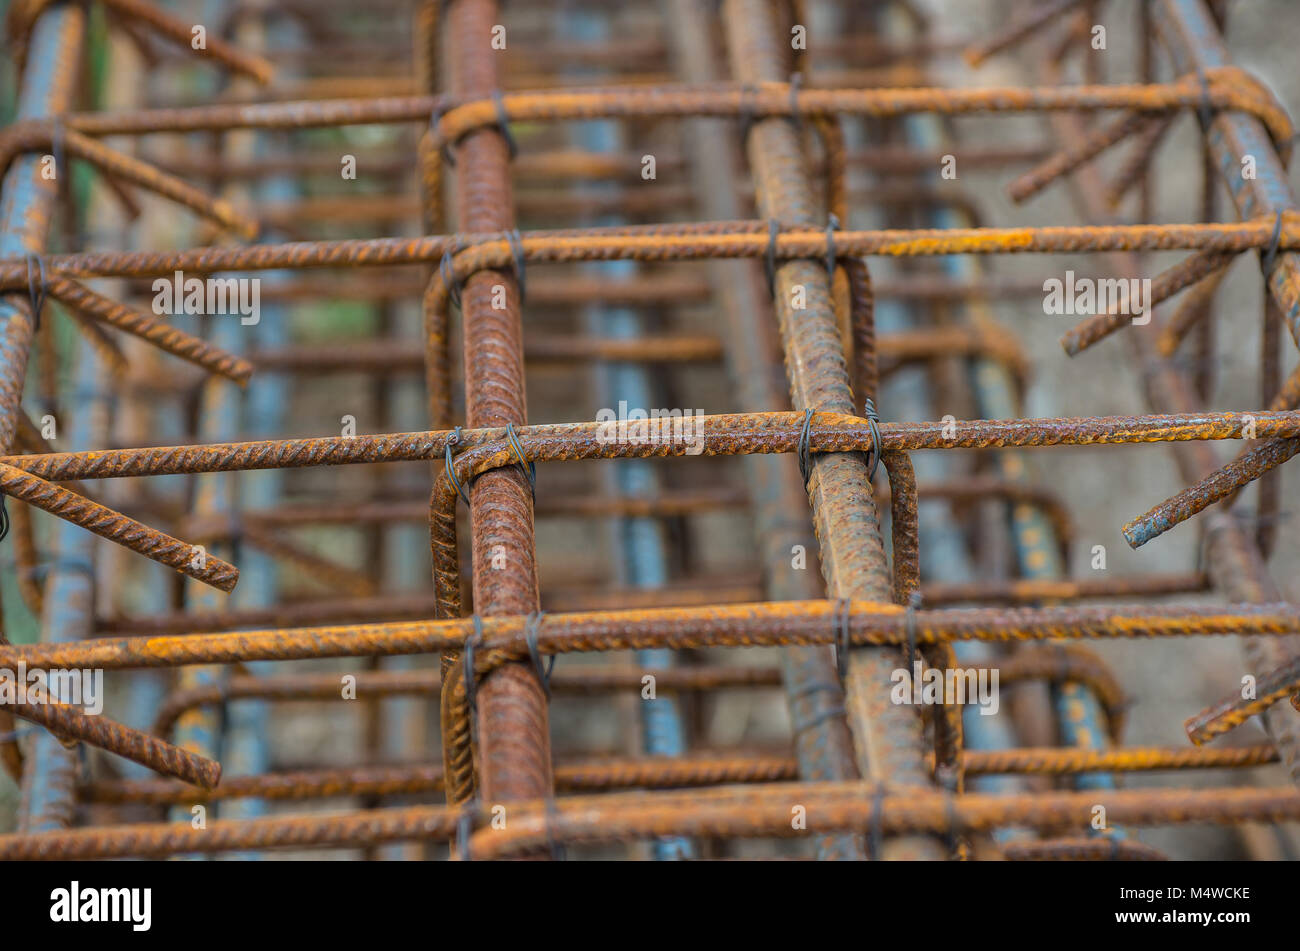 Reinforcement Cage Stock Photos Images Mesh Wiring Wire Of Concrete Pouring Image